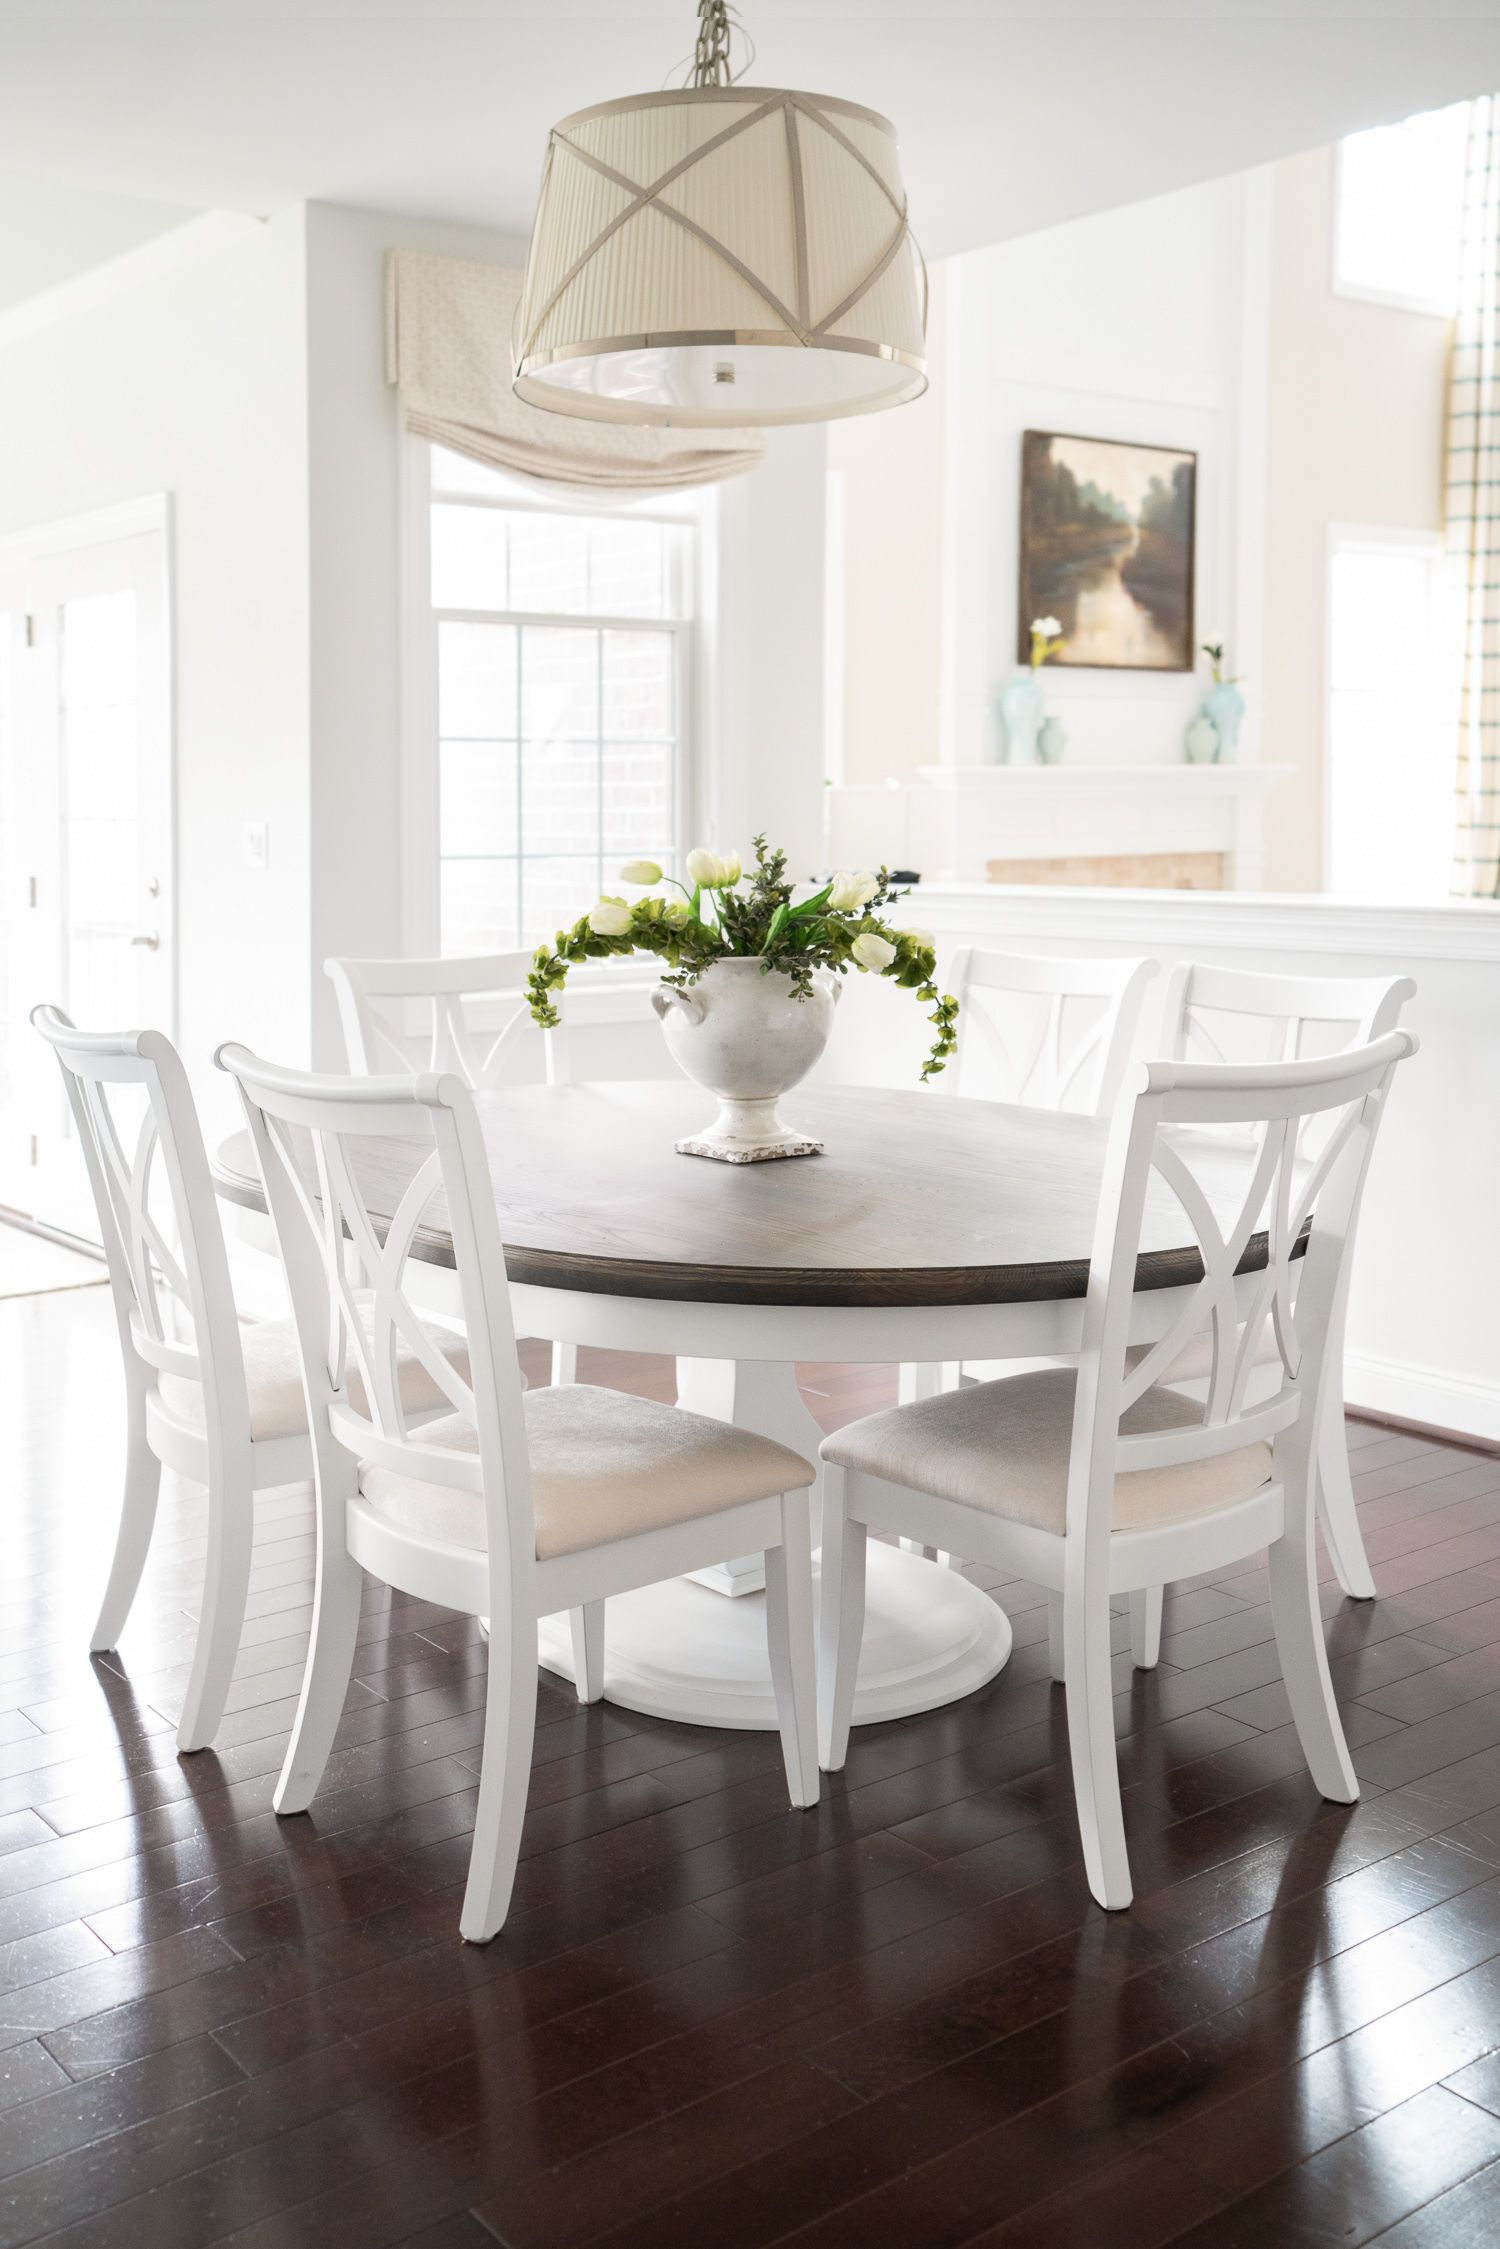 Kitchen Reveal From Overlay To Inset White Kitchen Chairs White Kitchen Table Country White Kitchen